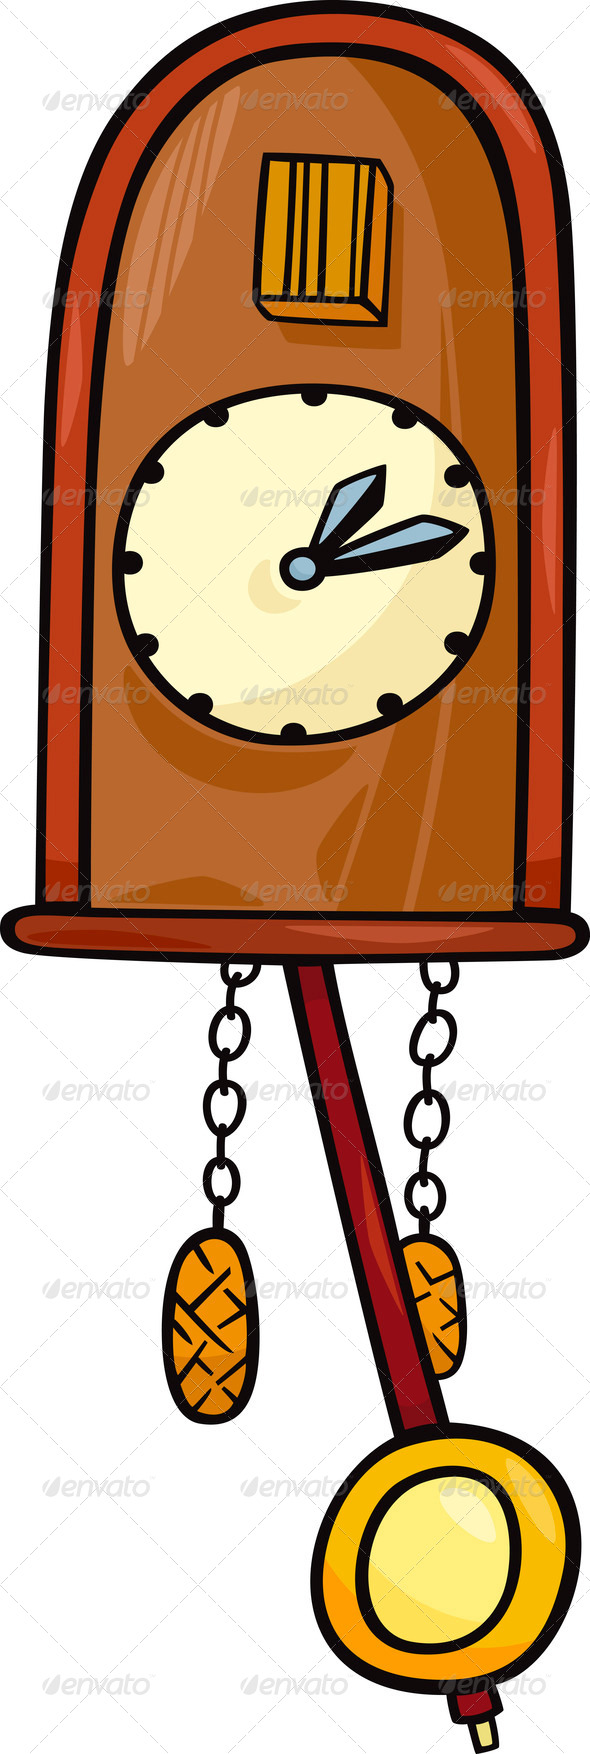 Pendulum clipart cartoon #2